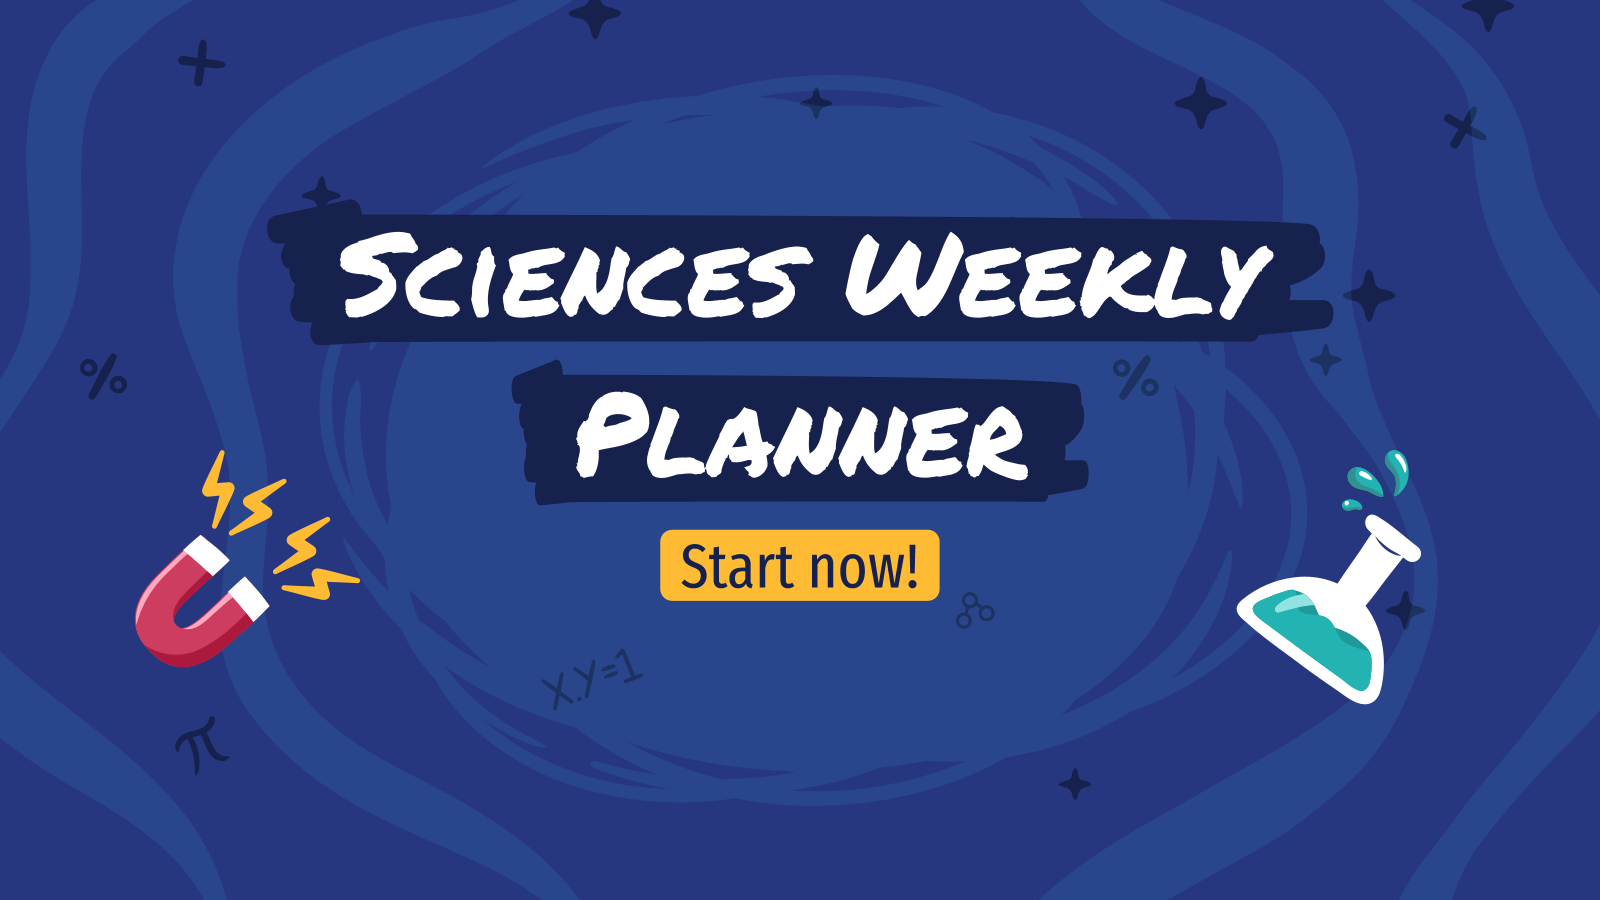 Science Weekly Planner presentation template